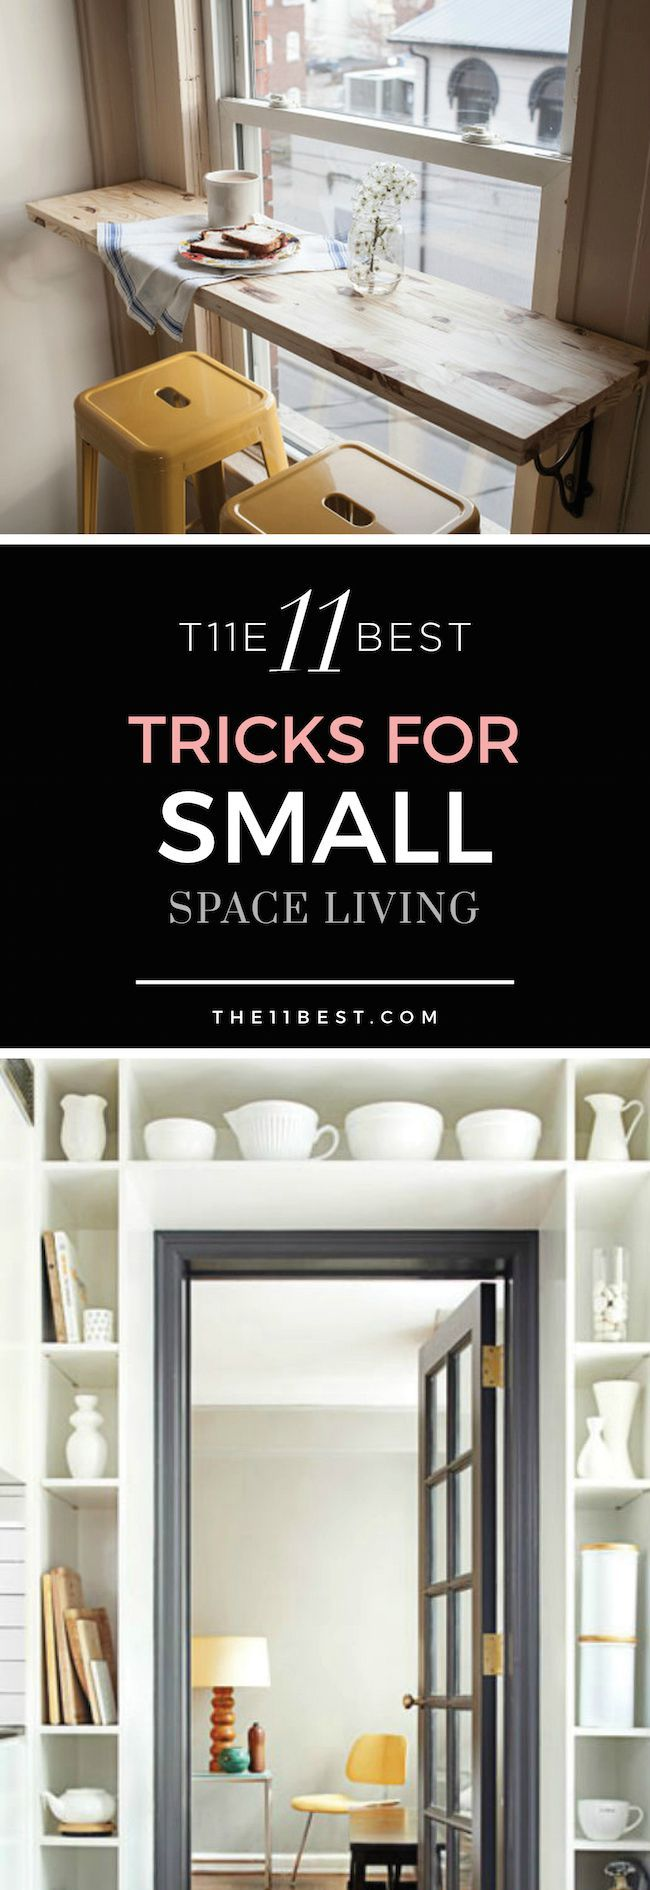 17 best ideas about small space design on pinterest small apartment bedrooms small space bedroom and small space storage - Small Space Design Ideas